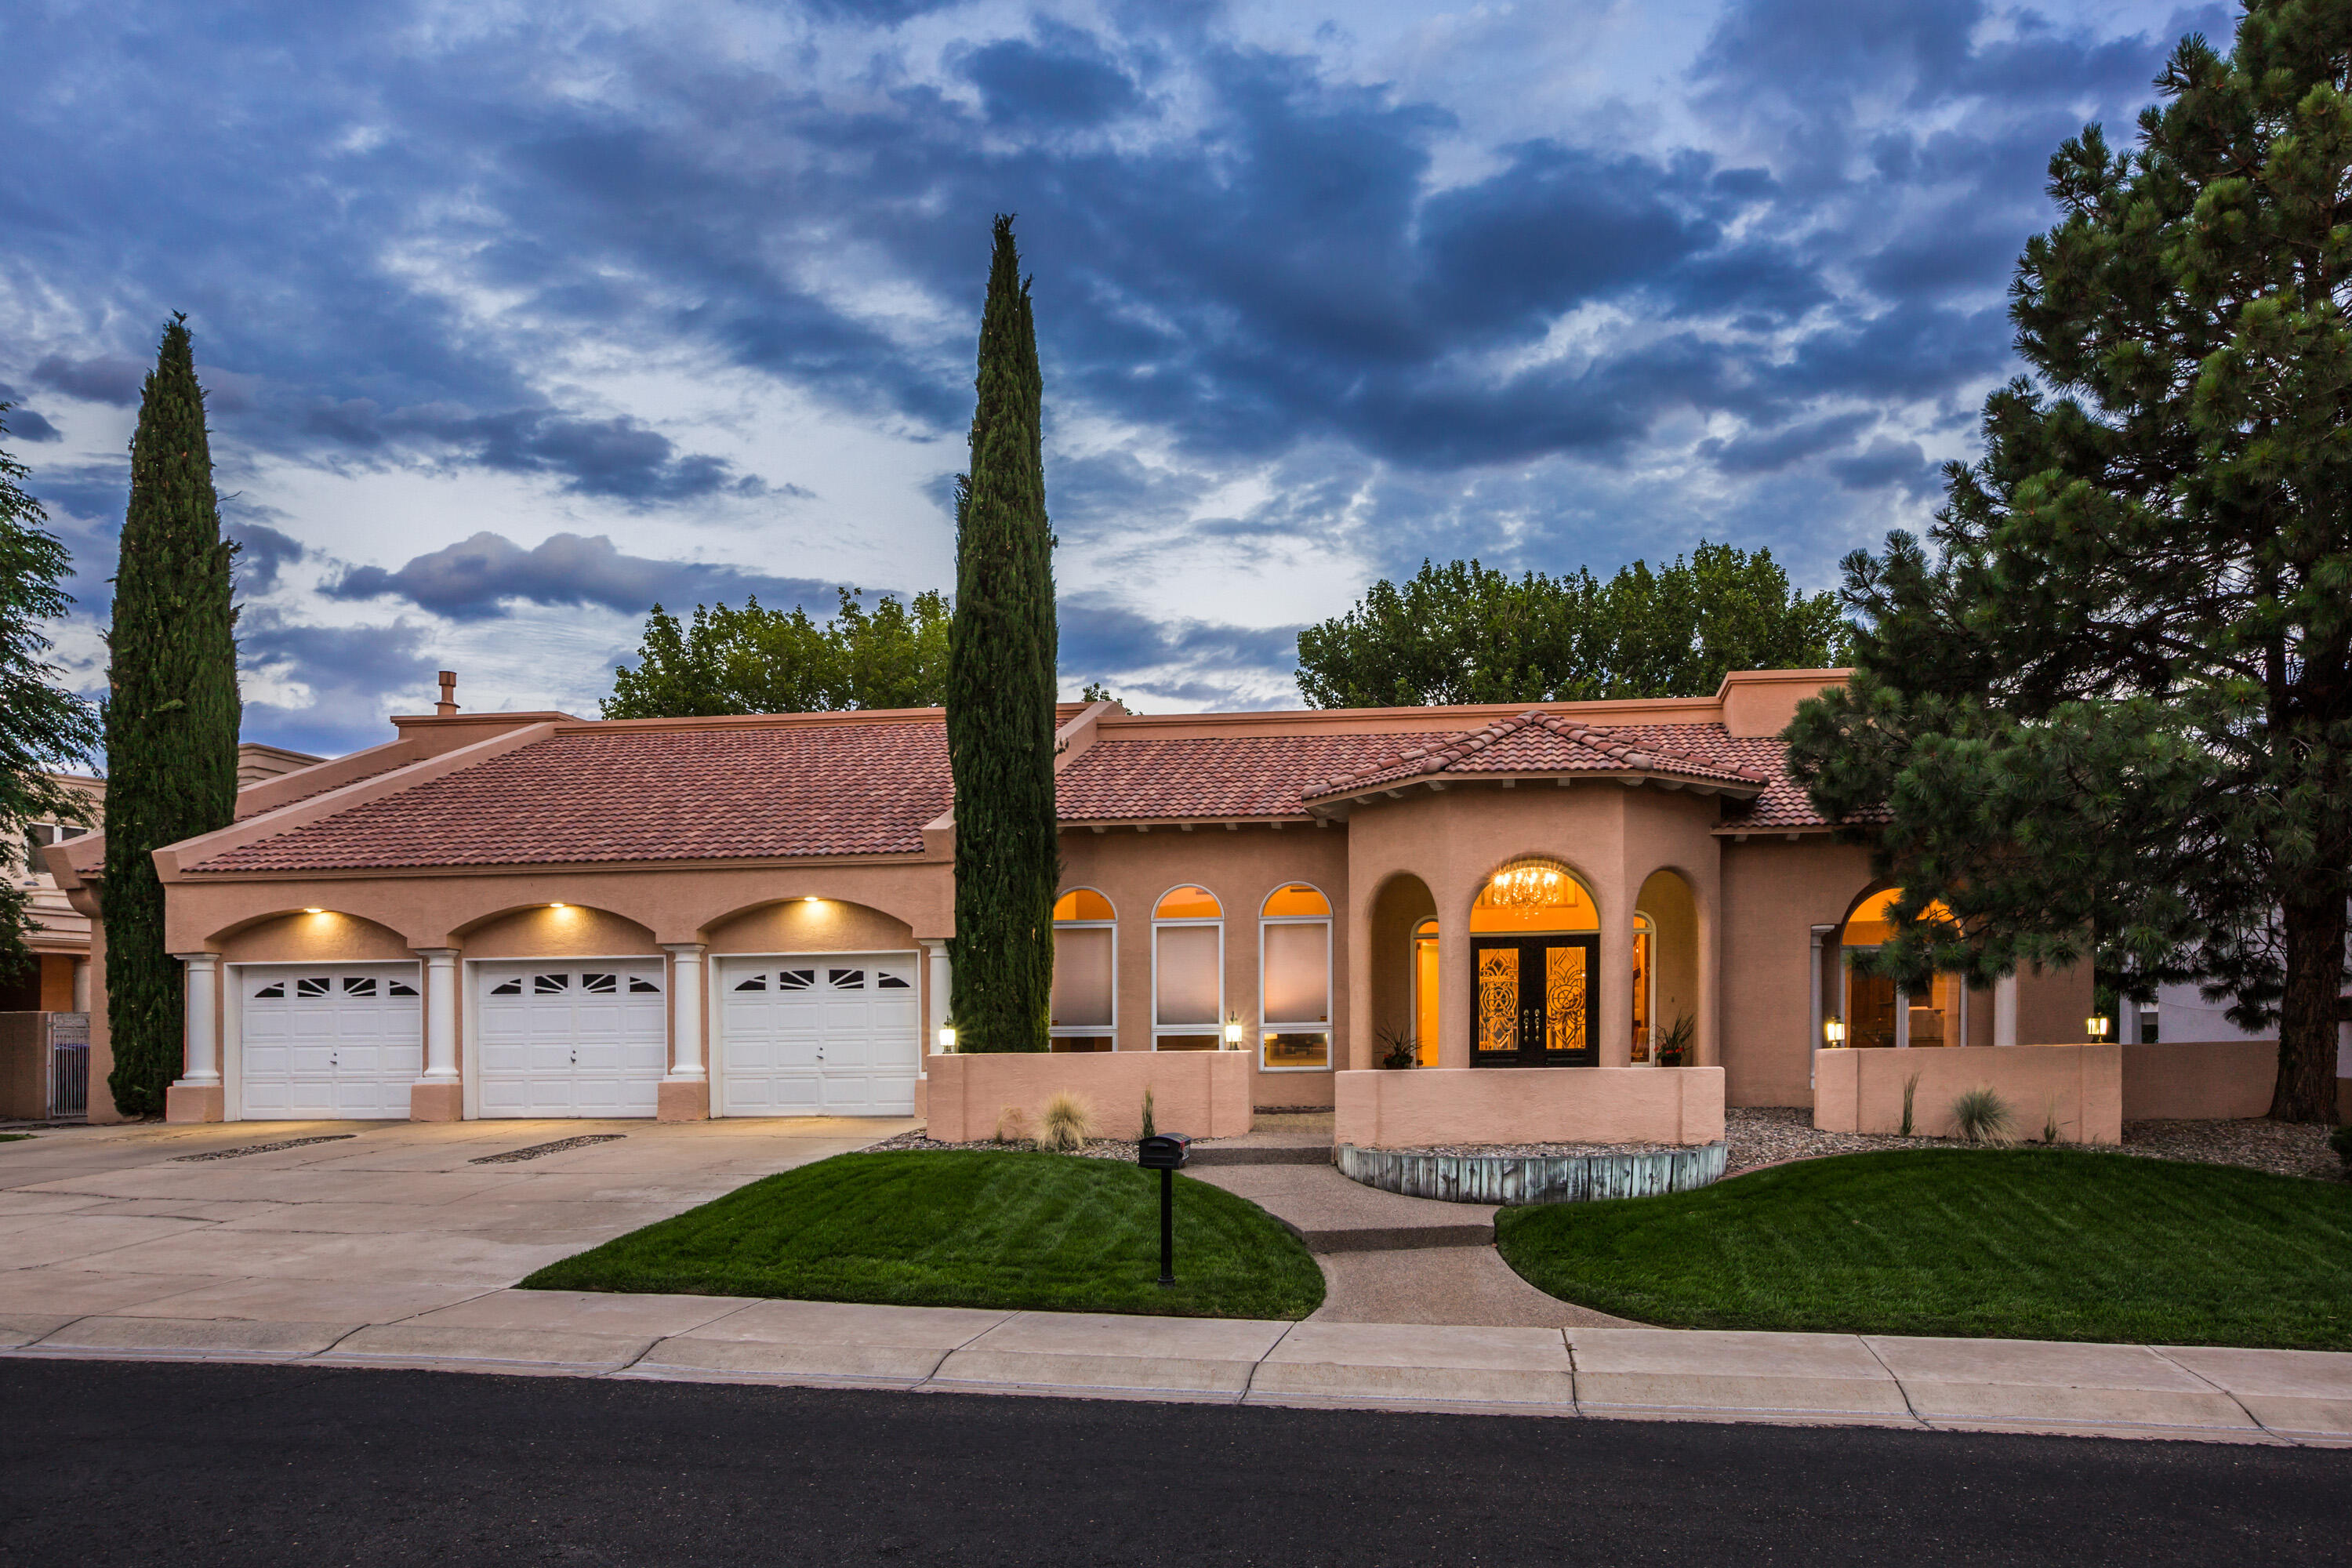 Incredible find in Tanoan, Albuquerque's only 24/7 Guard Gated Golf Course and Country Club Community. This custom home will take your breath away when you enter the grand foyer with a beautiful sweeping staircase. There are both formal and informal living and dining areas, and the great room features a beautiful fireplace, a sunken bar, and beautiful arched windows overlooking the lush backyard and the golf course. The large kitchen features a walk in pantry, rich granite, a breakfast nook and access to the outdoor covered patio. There are 2 bedrooms on the main level, and 2 bedrooms upstairs in addition to the primary suite and a loft. The backyard is beautifully landscaped and offers golf course and mountain views. Oversized garage holds 3 cars and a workshop, or golf cart parking!